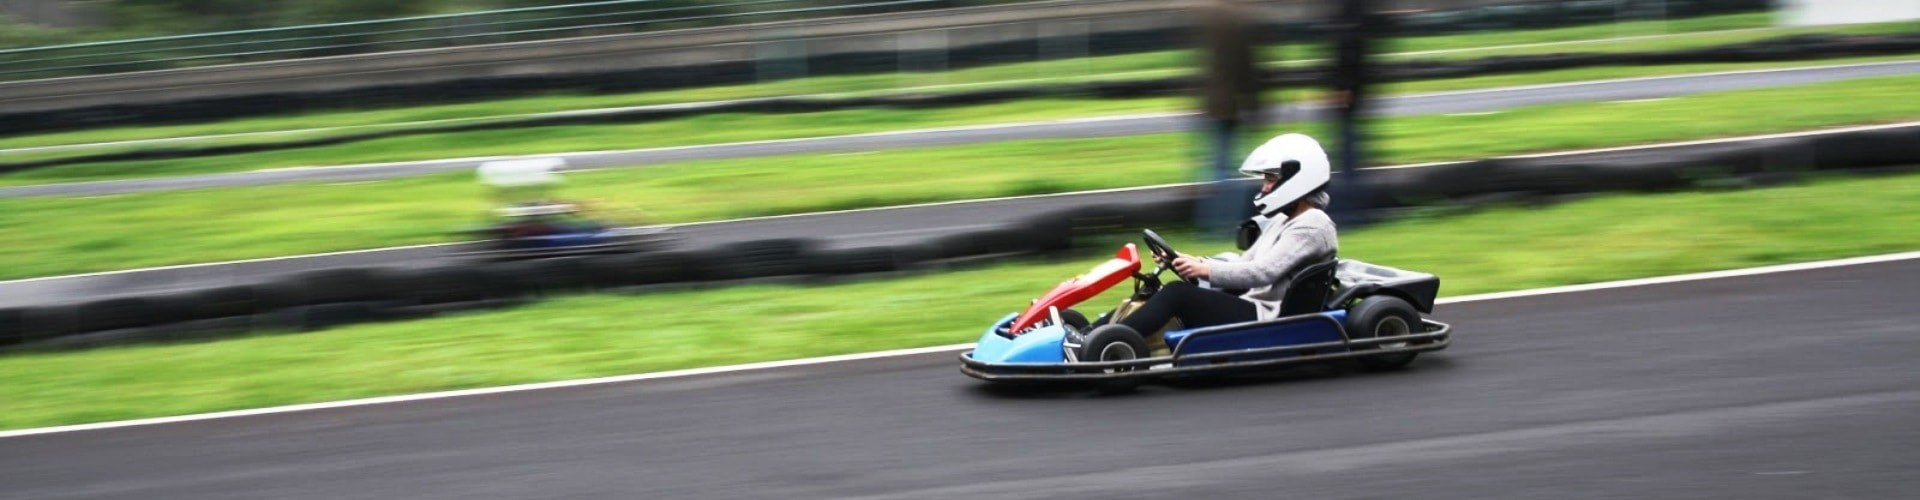 Karting in Madeira Island